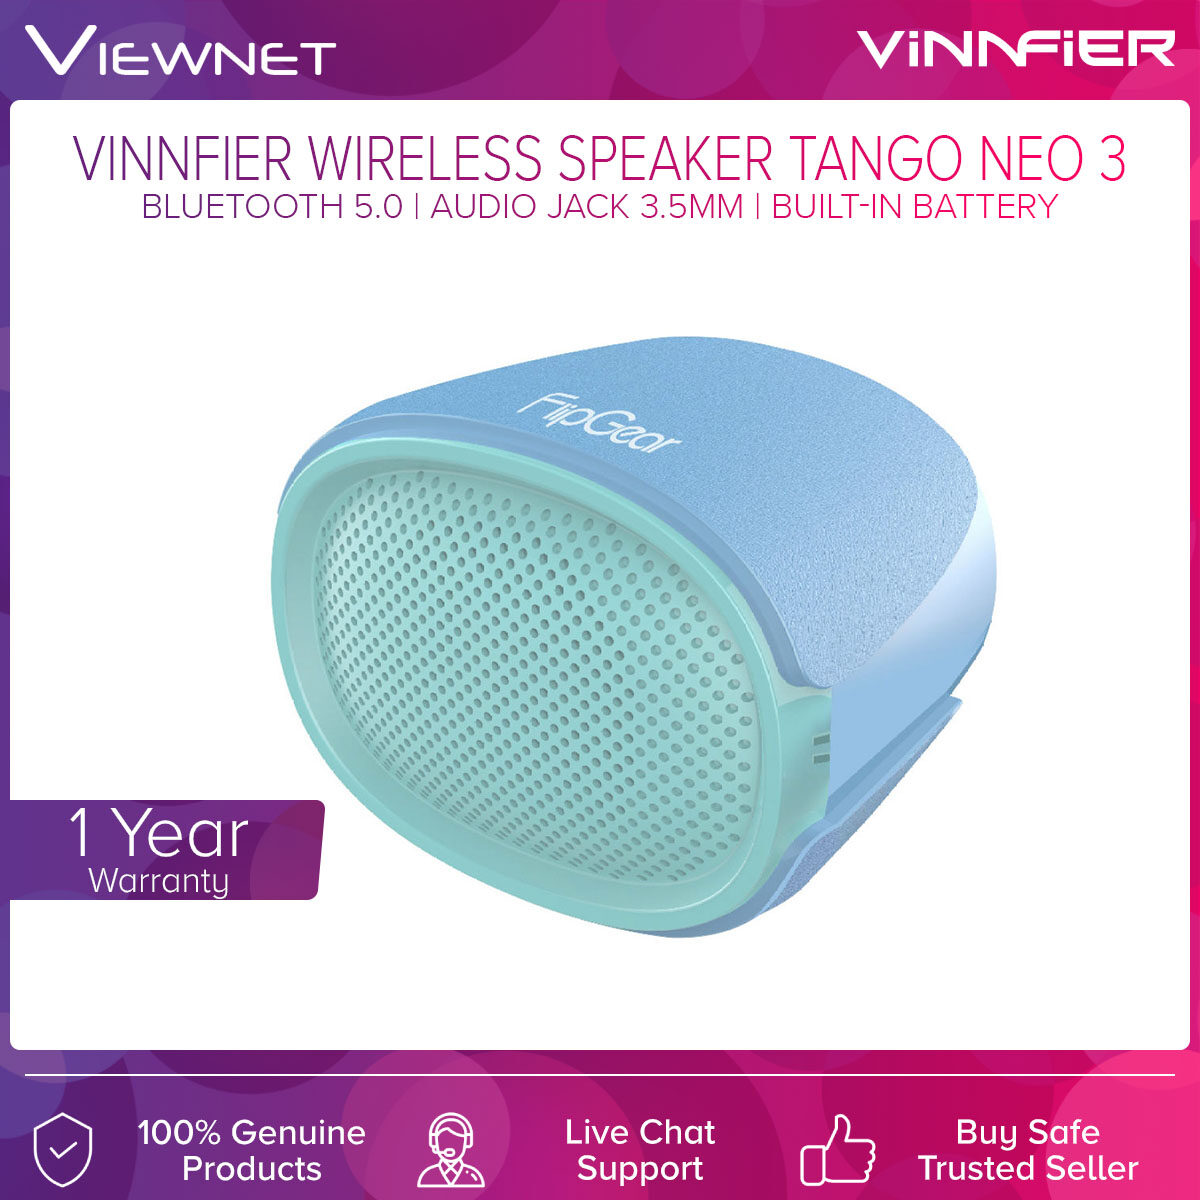 Vinnfier Wireless Portable Speaker Tango Neo 3 with Bluetooth 5.0, Audio Jack 3.5MM, USB Support, Up To 8 Hours Battery Life